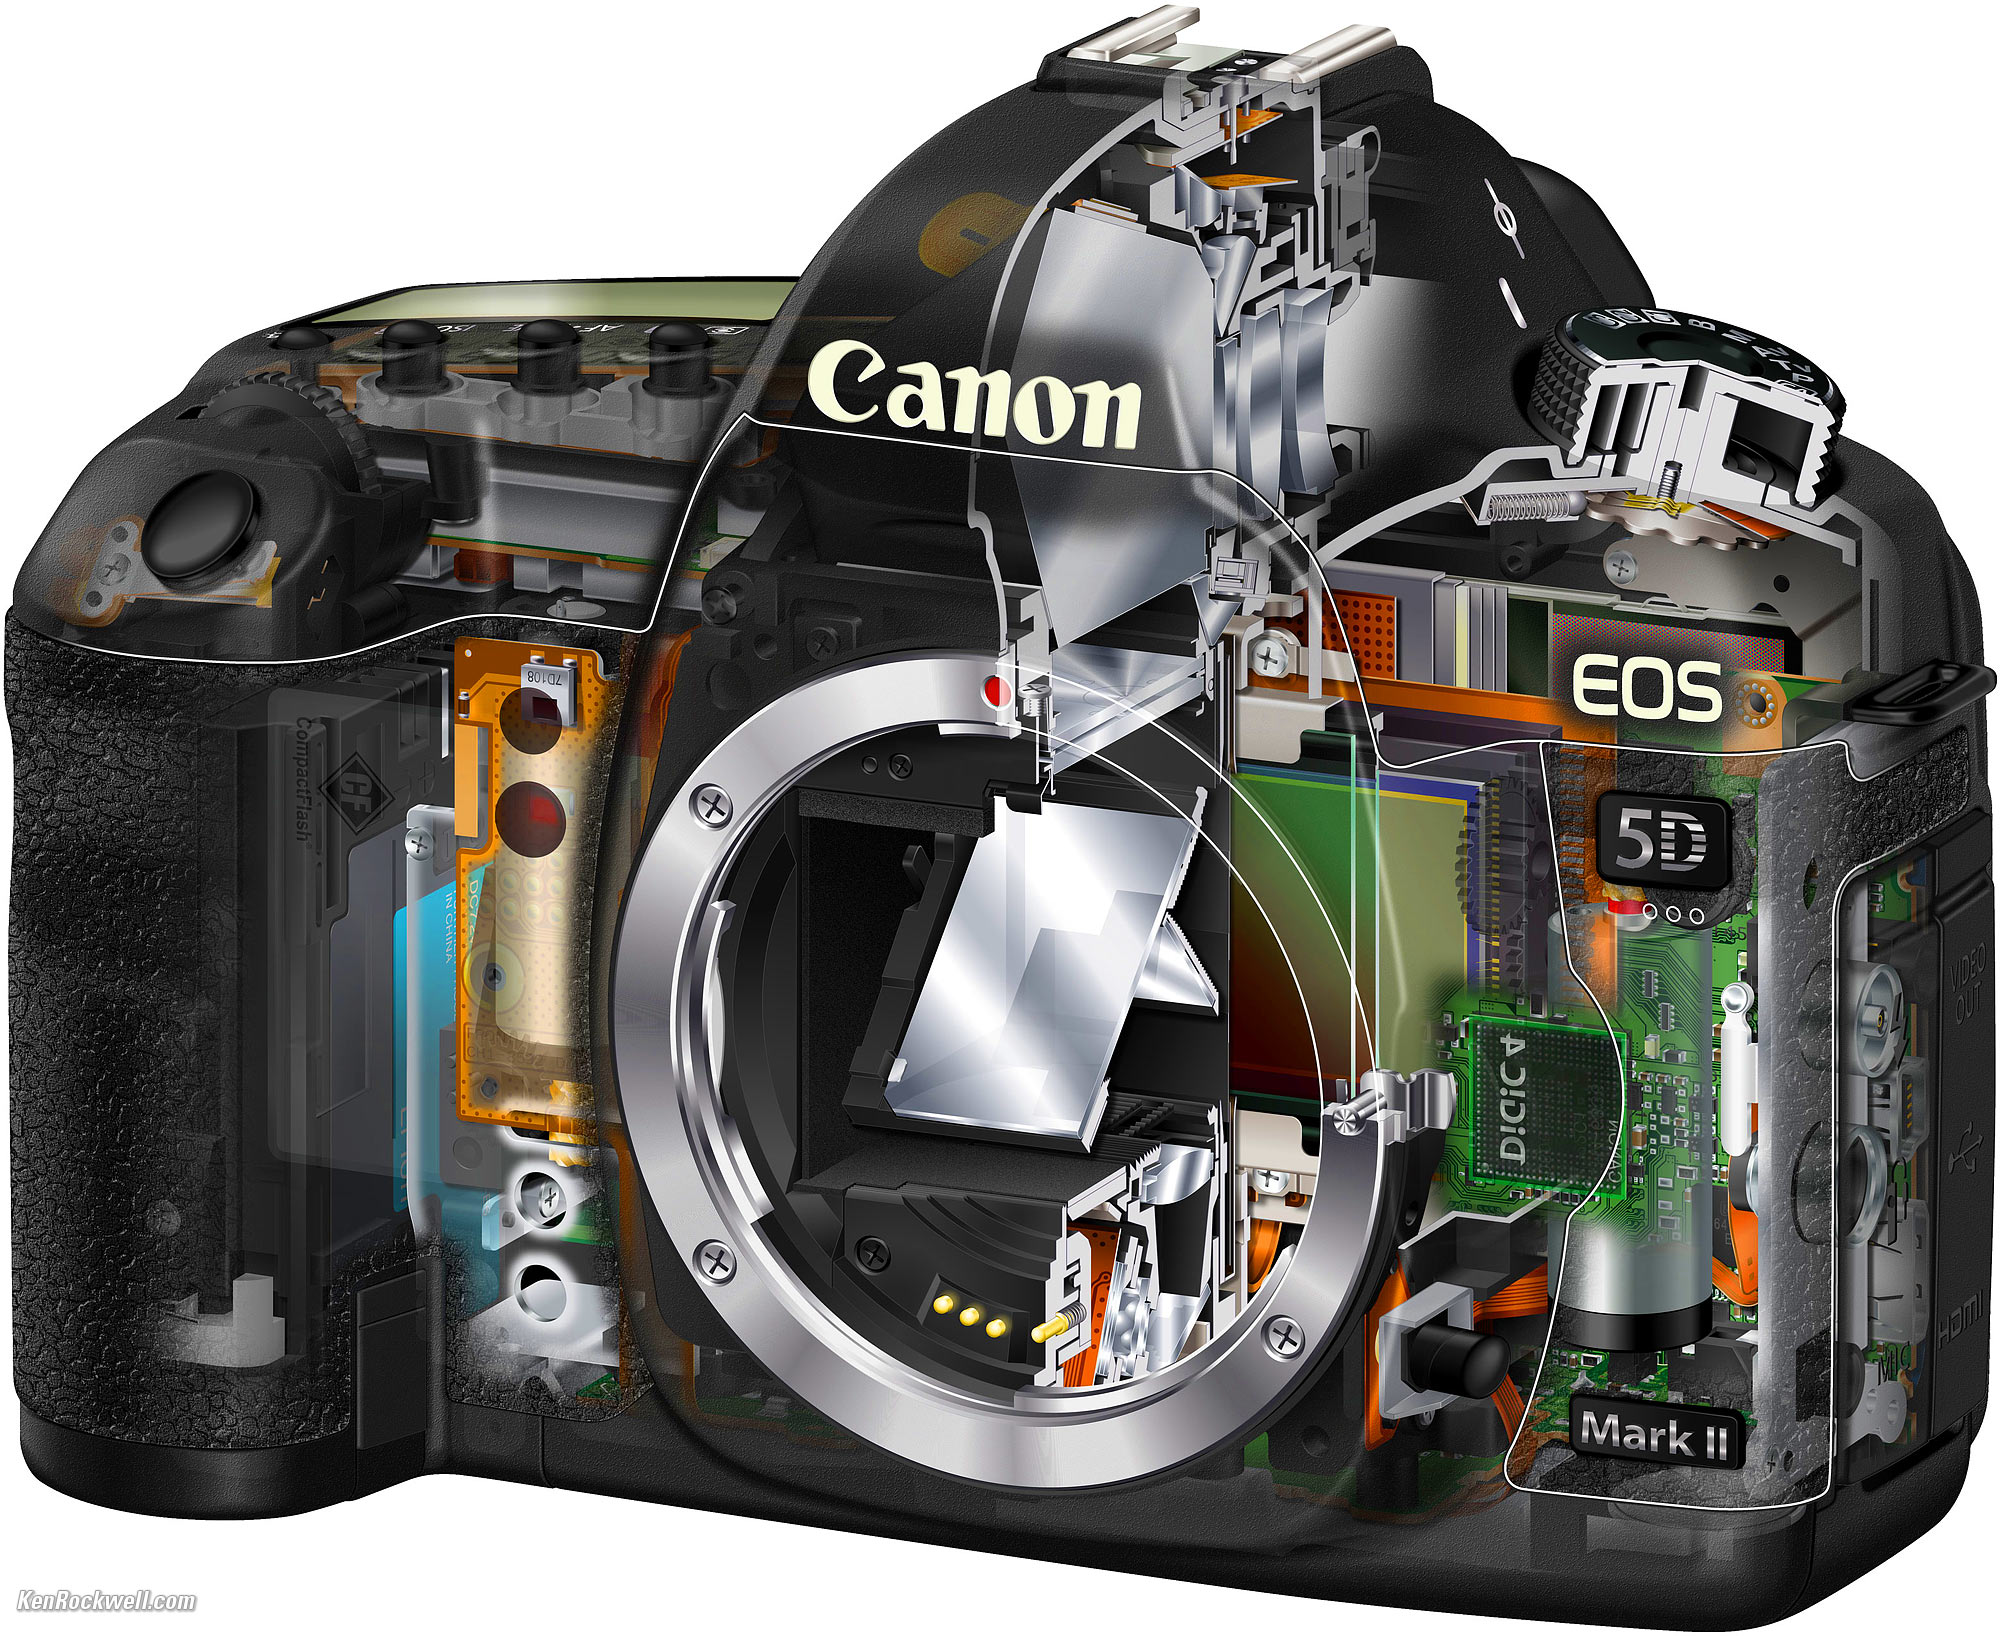 Canon camera repair center camera repair canon cameras malvernweather Choice Image